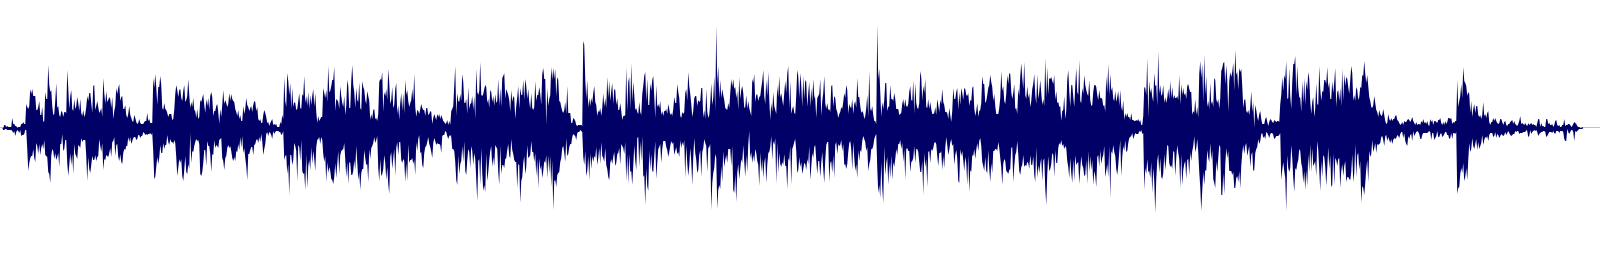 waveform of track #130097